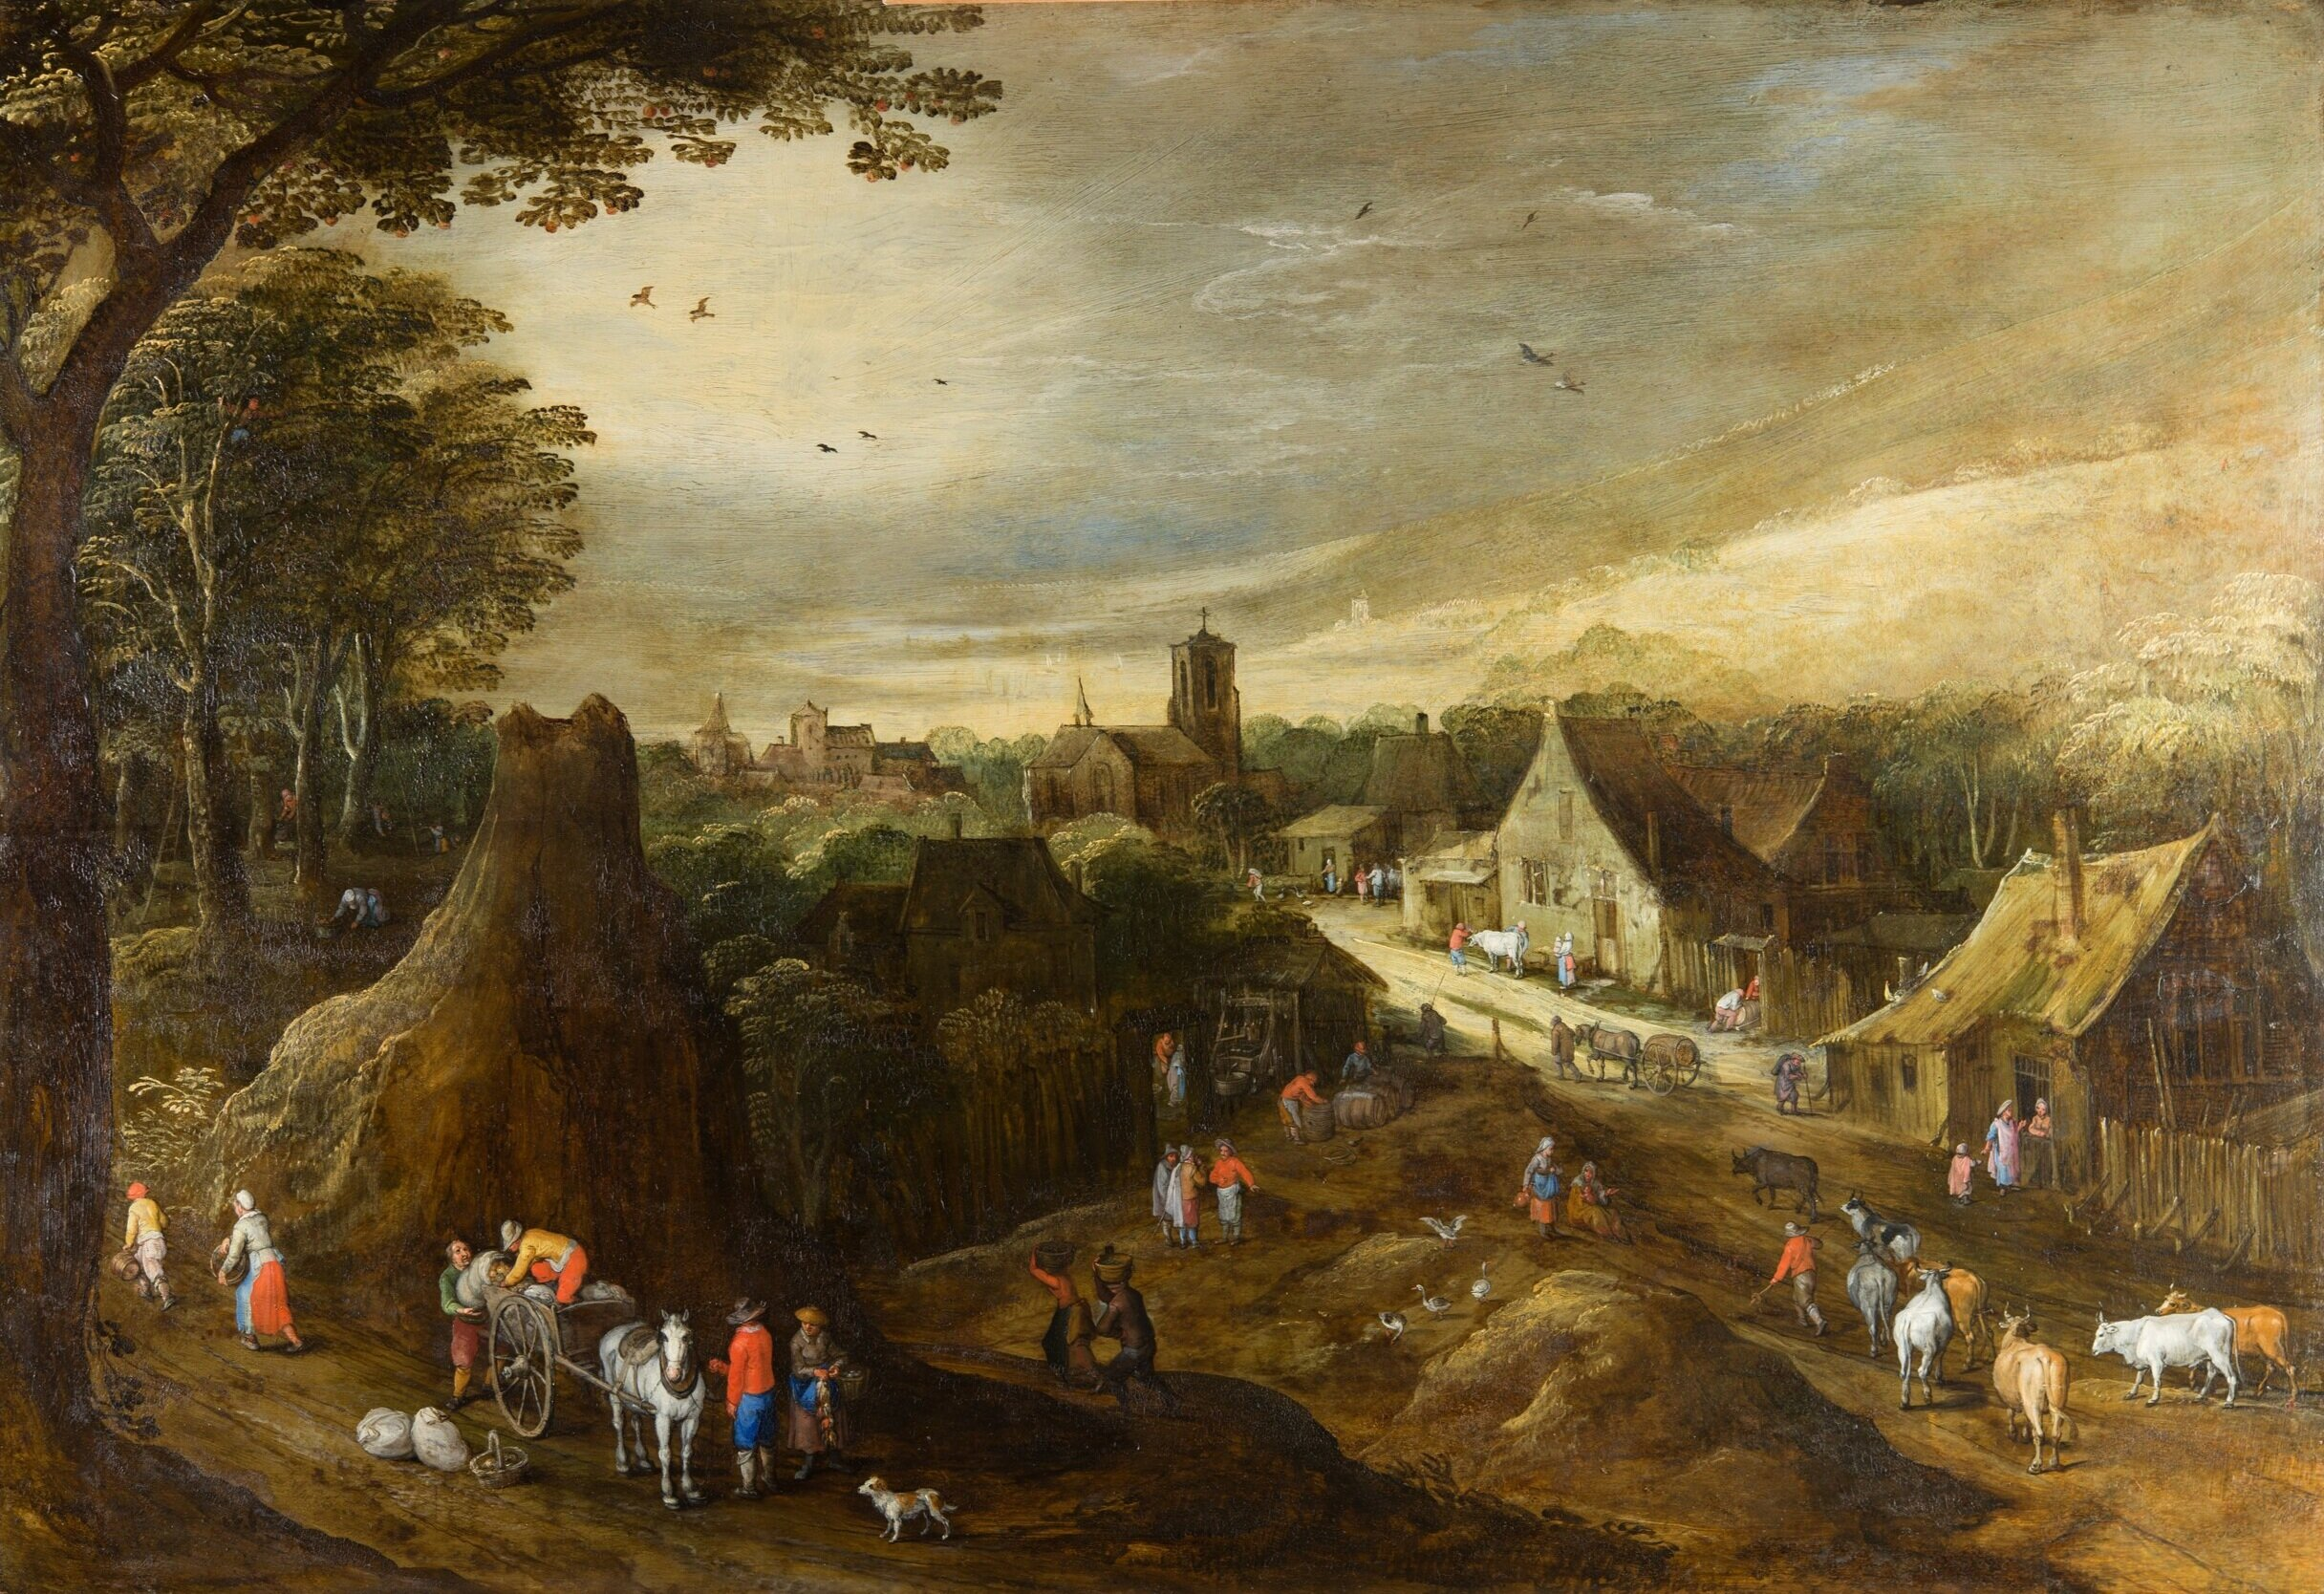 The painting after treatment. For comparison, the two images below, of two paintings by Jan Brueghel the Elder and Joos de Momper (taken from the  Art UK  website), give a sense of what this picture must have looked like before the blue pigments faded.